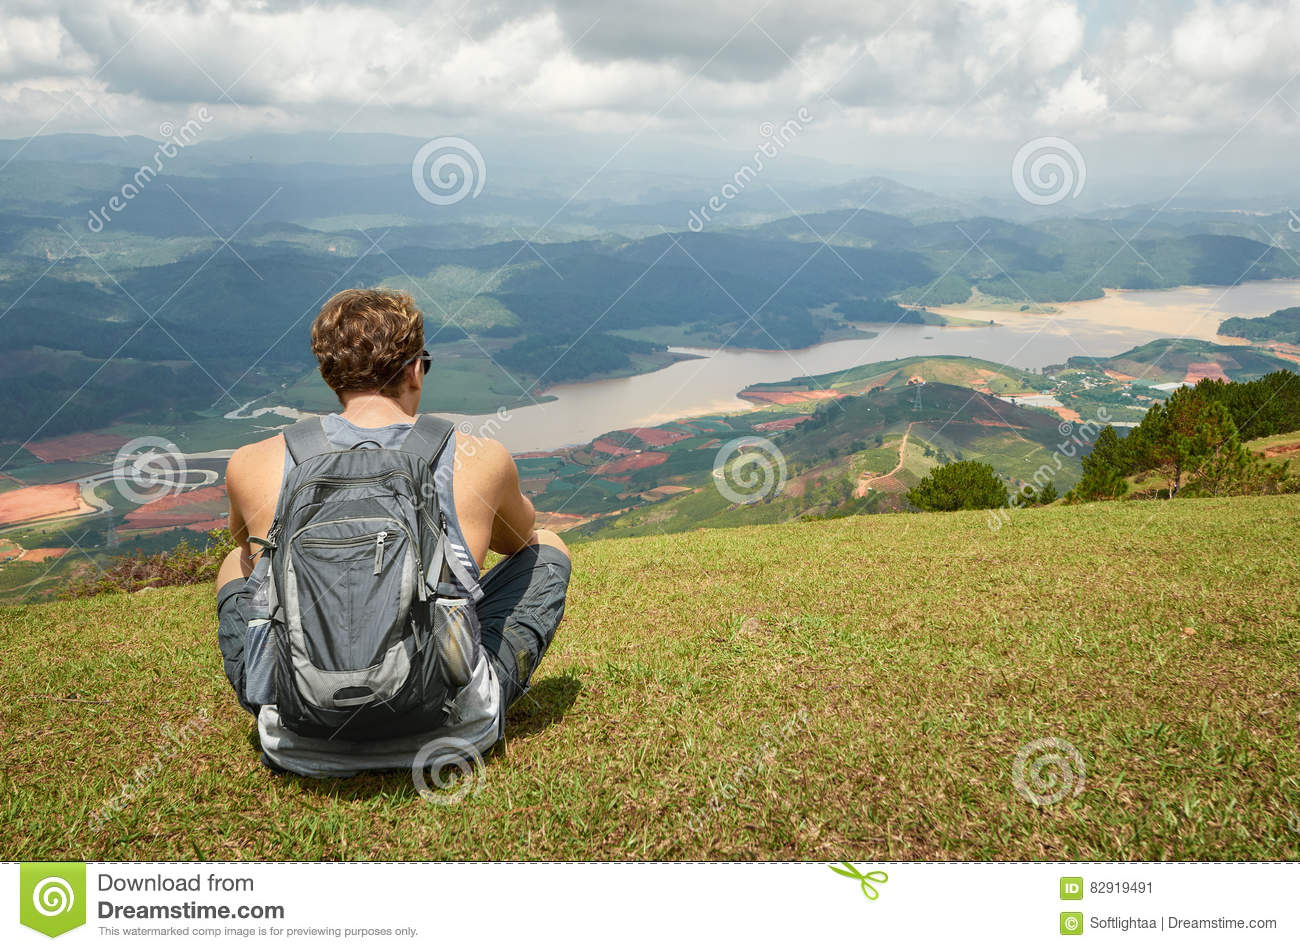 Traveller gray backpack resting enjoying the sunny valley of mountains in the background